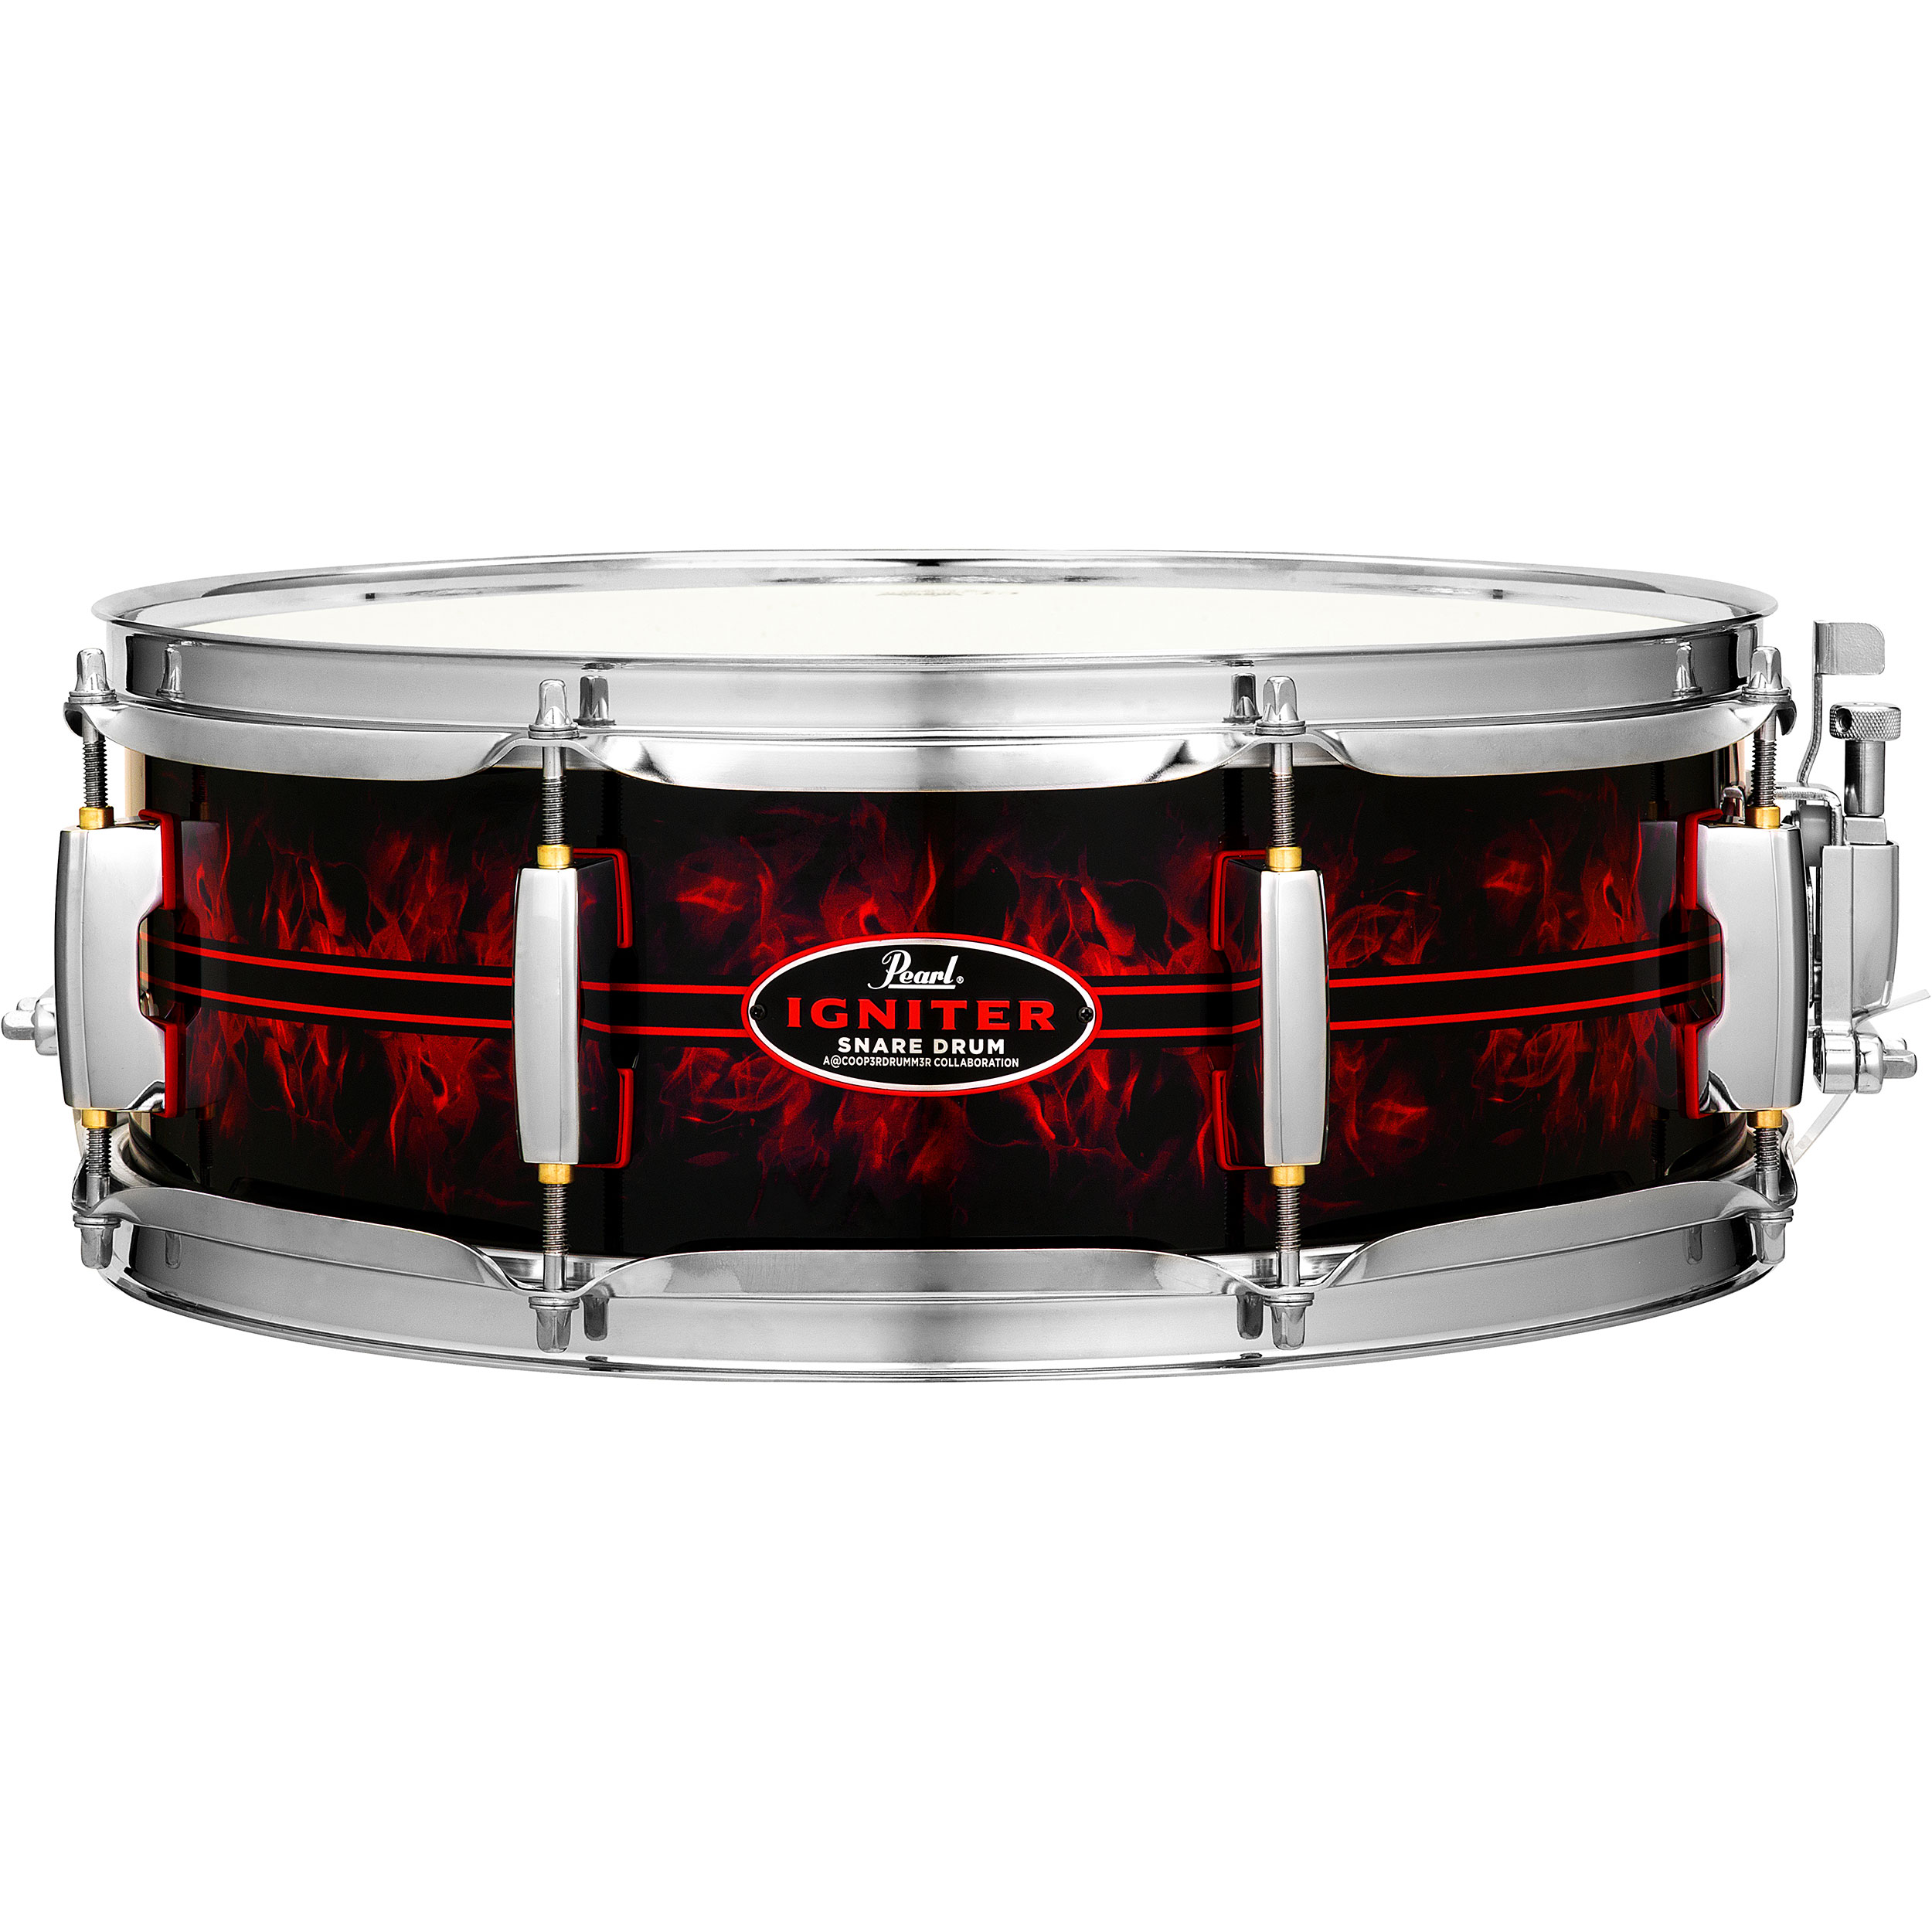 """Pearl 14"""" x 5"""" Igniter 6-Ply Poplar/Maple Snare Drum in Custom Pinstripe/Flame Graphic Wrap"""